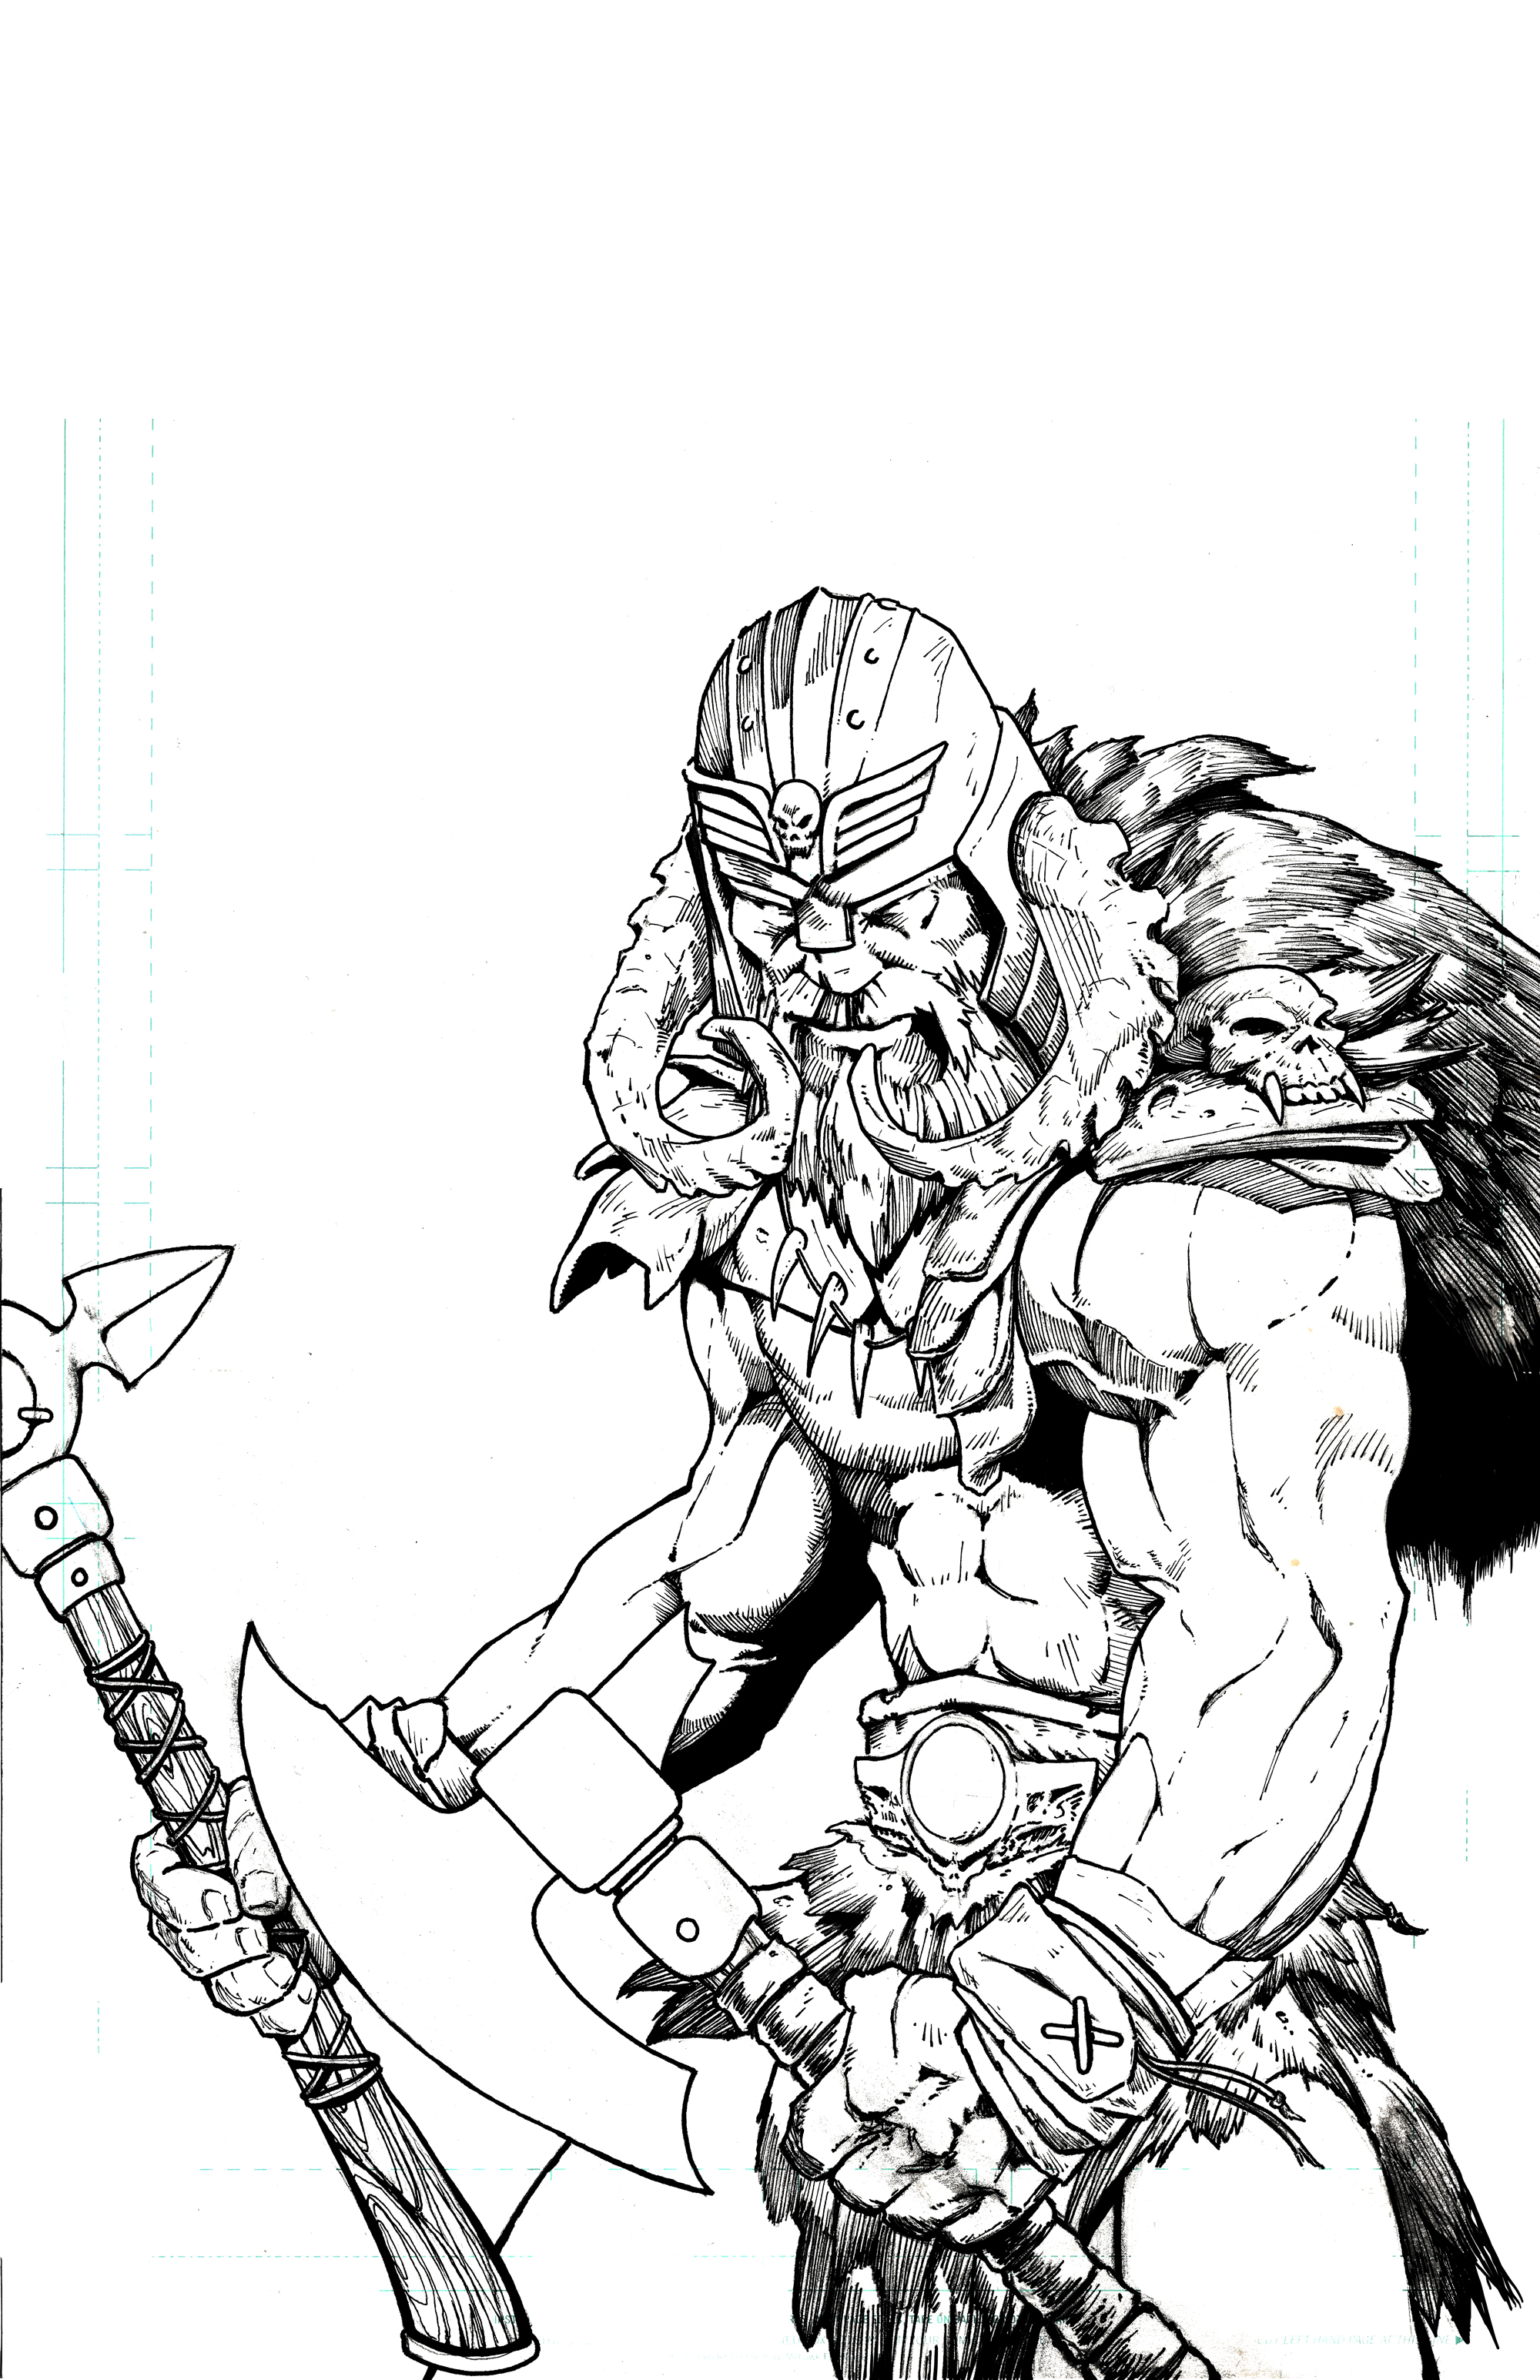 Viking_inks.jpg